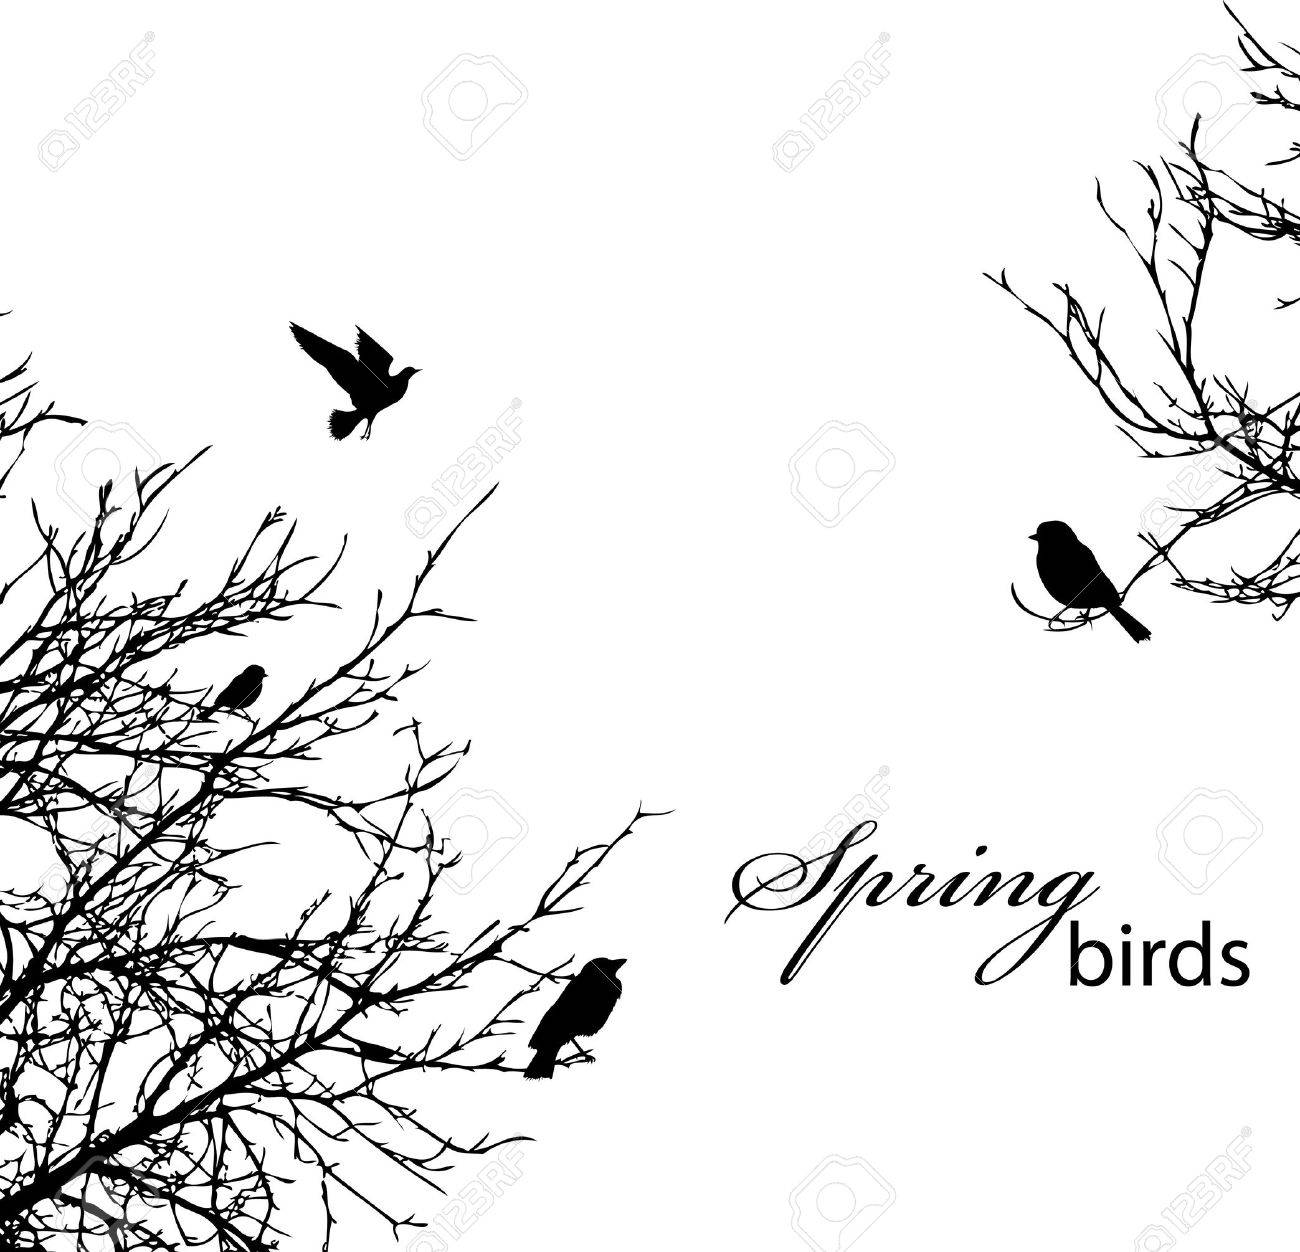 silhouette of trees and birds, copyspace - 9412169